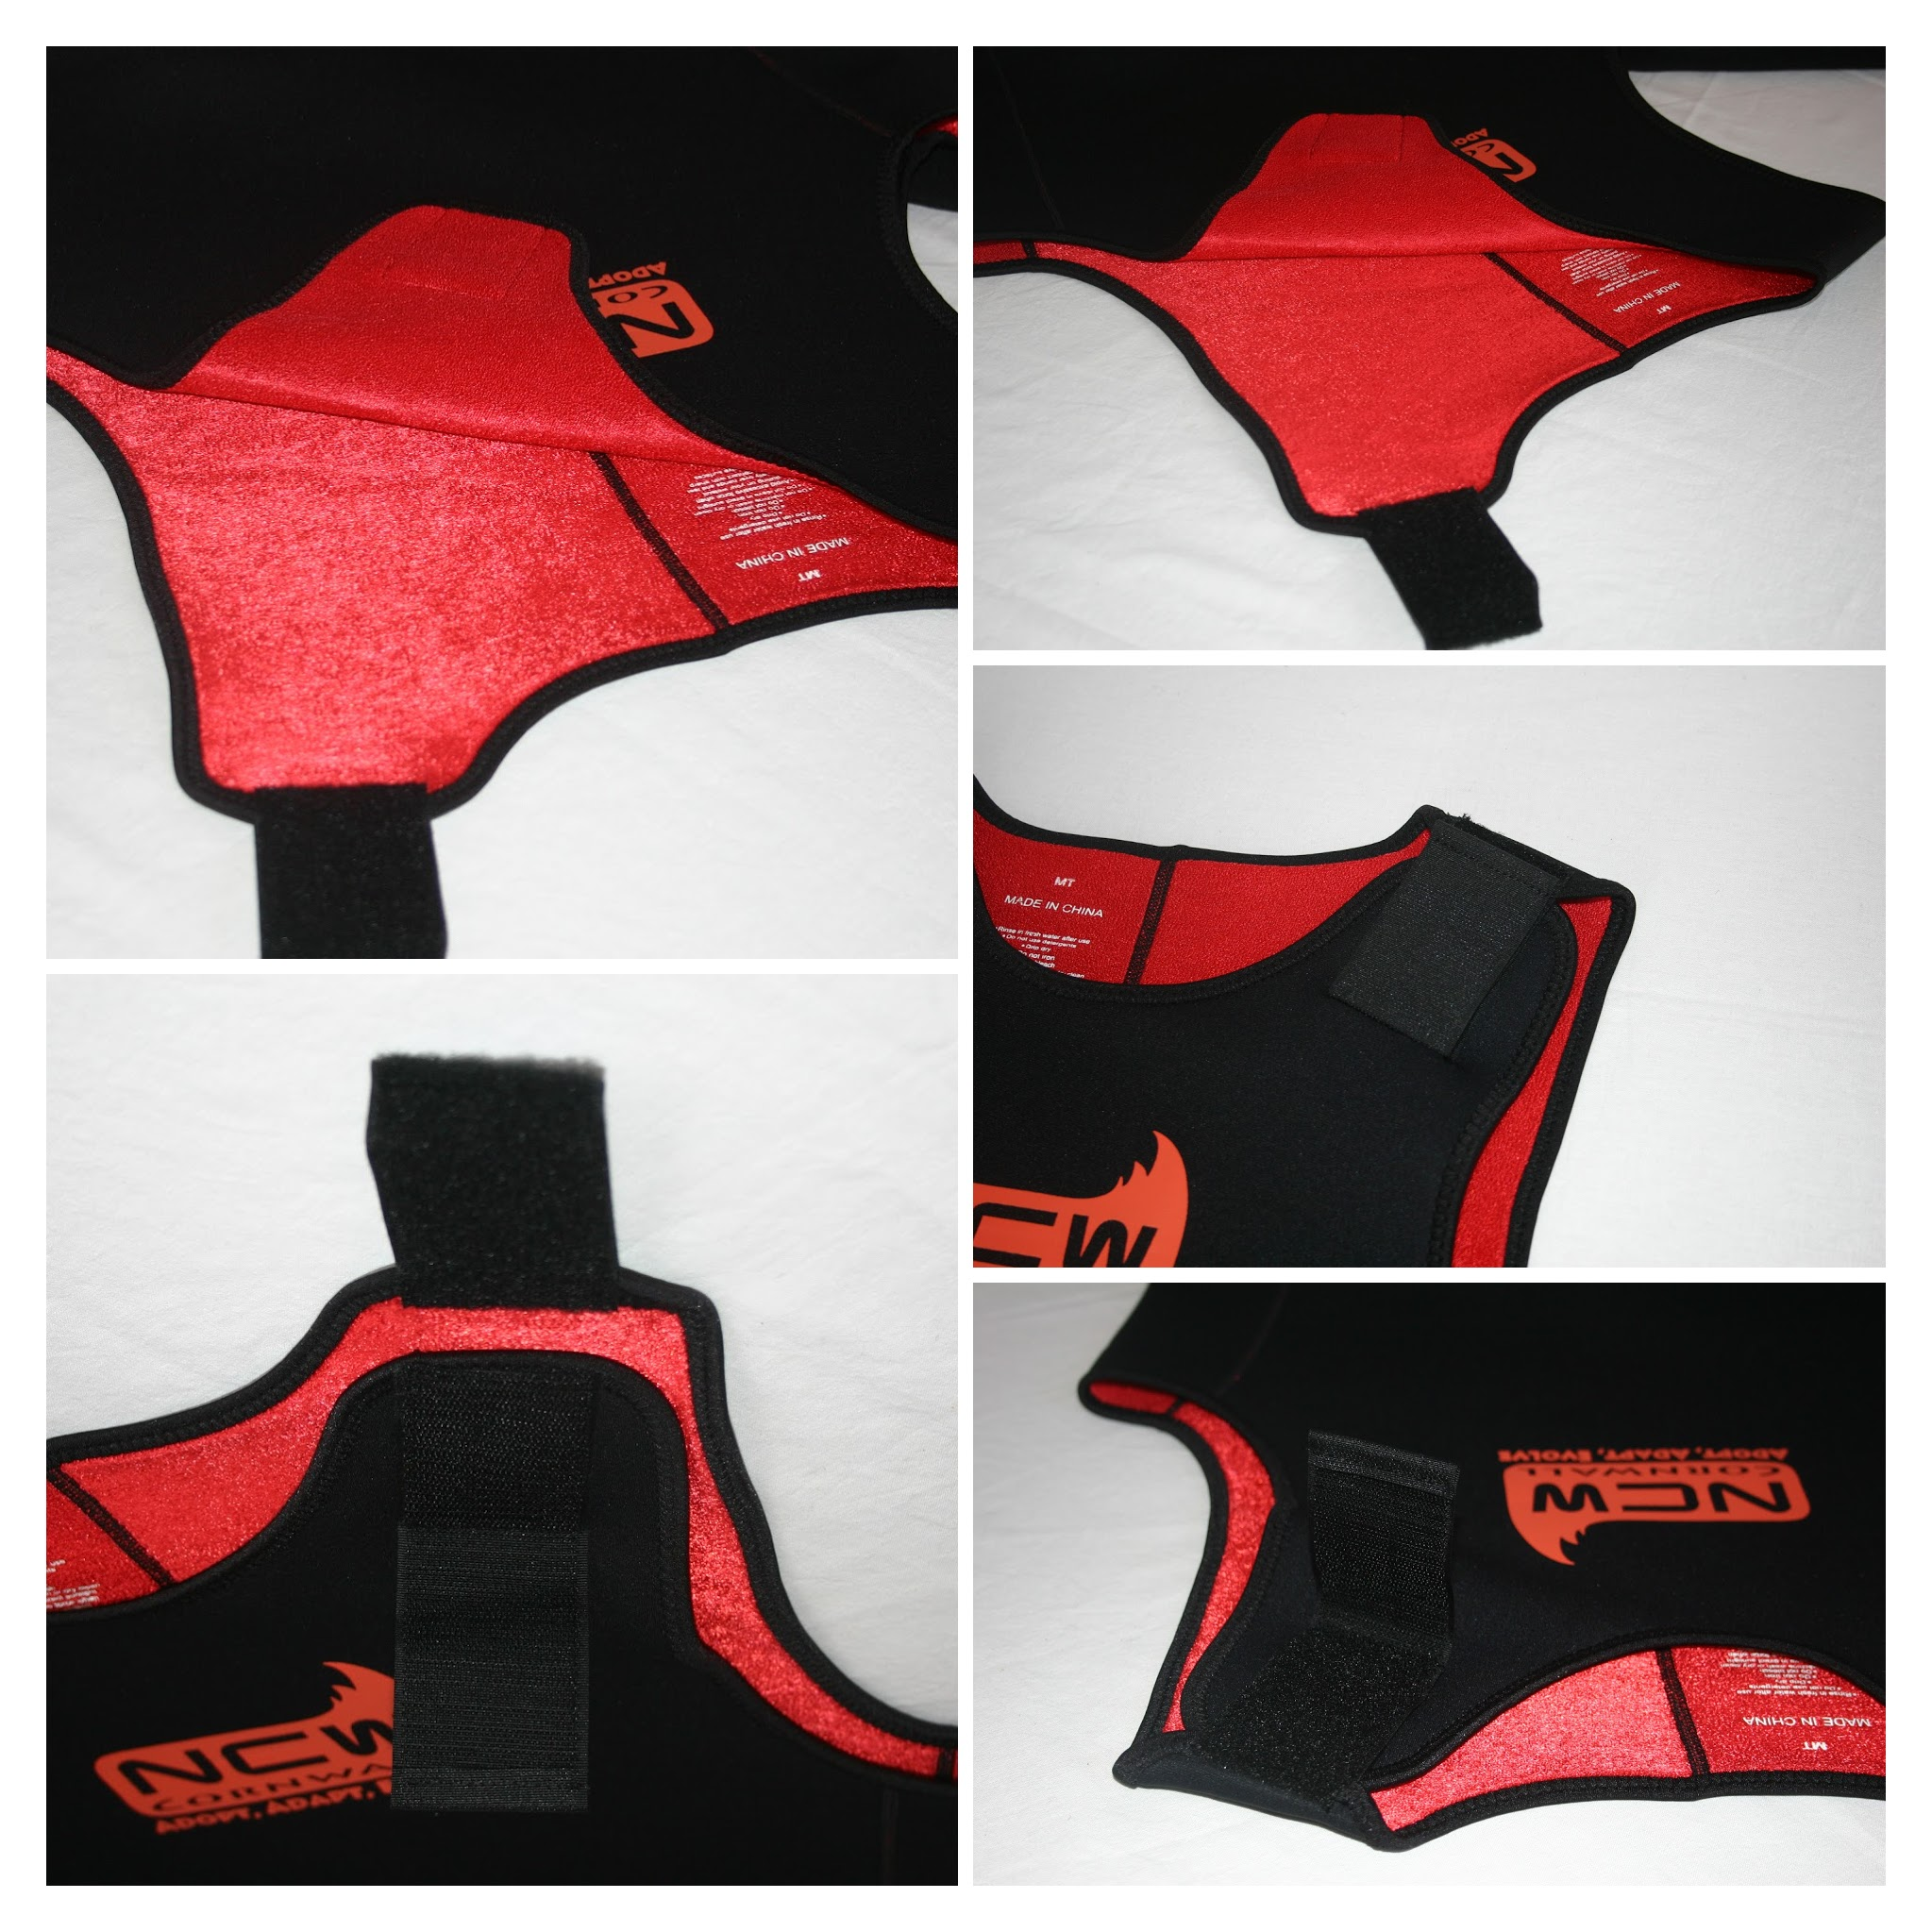 2mm thermal Short John wetsuit - closure